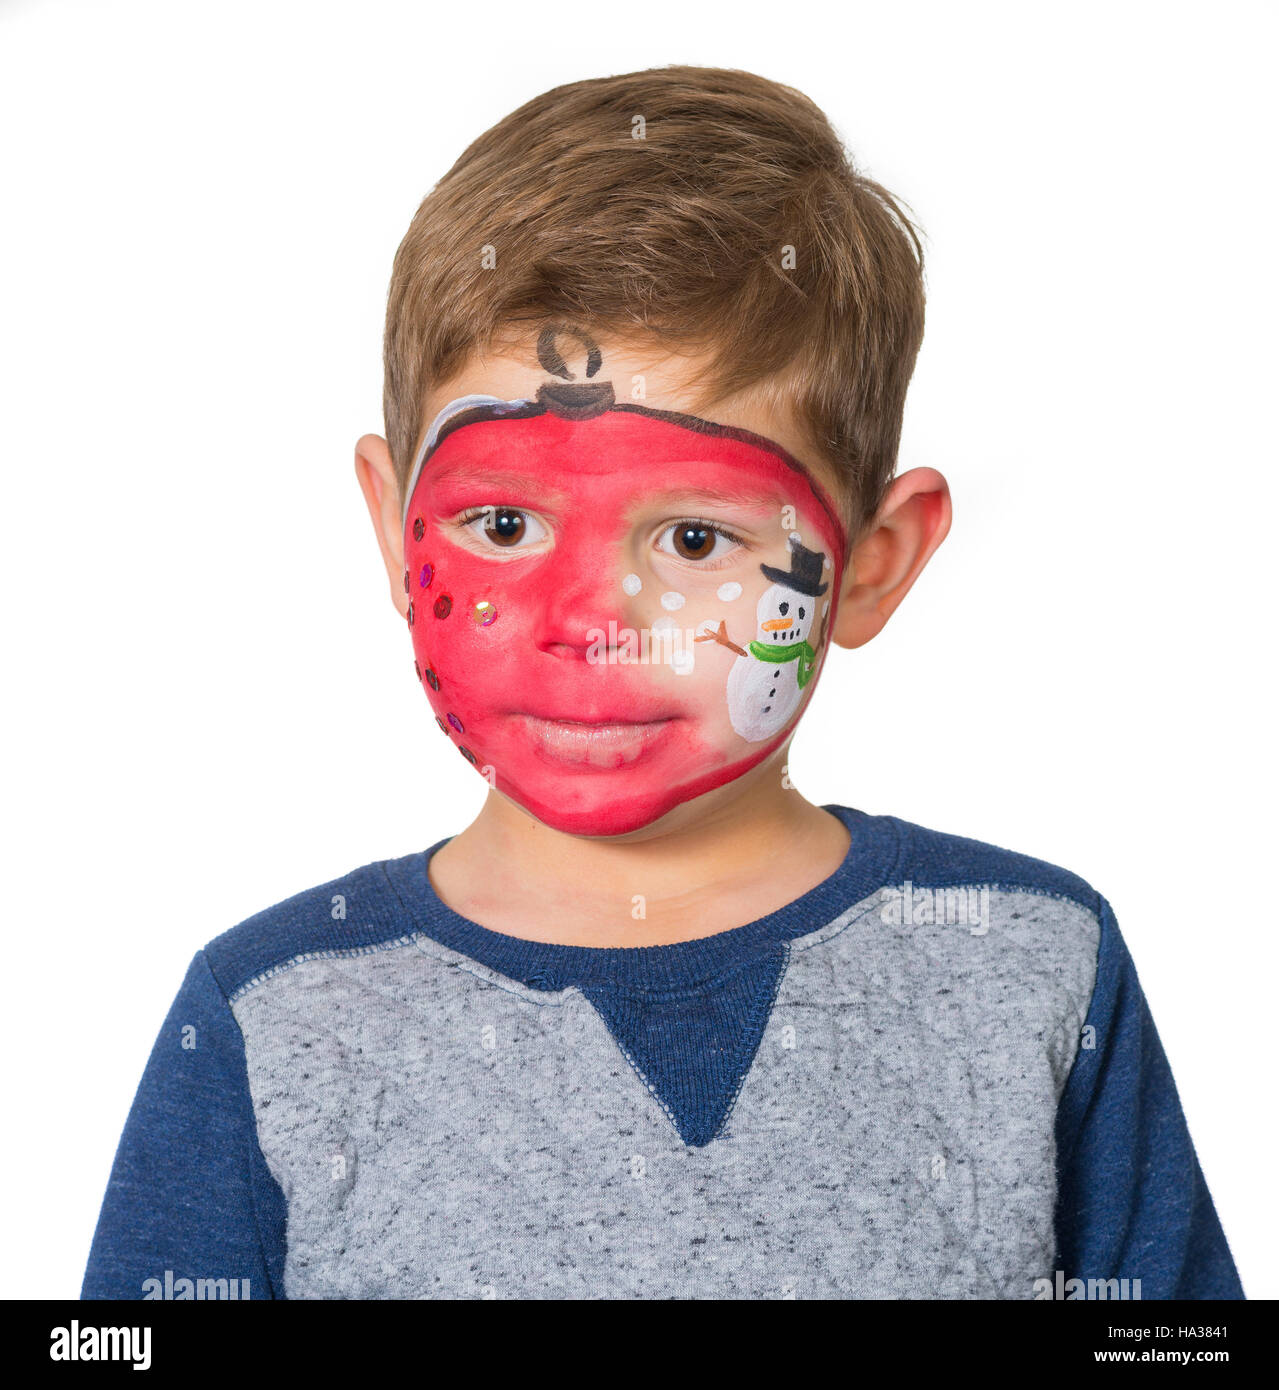 Christmas Face Paint.Christmas Face Painting Stock Photo 126691377 Alamy